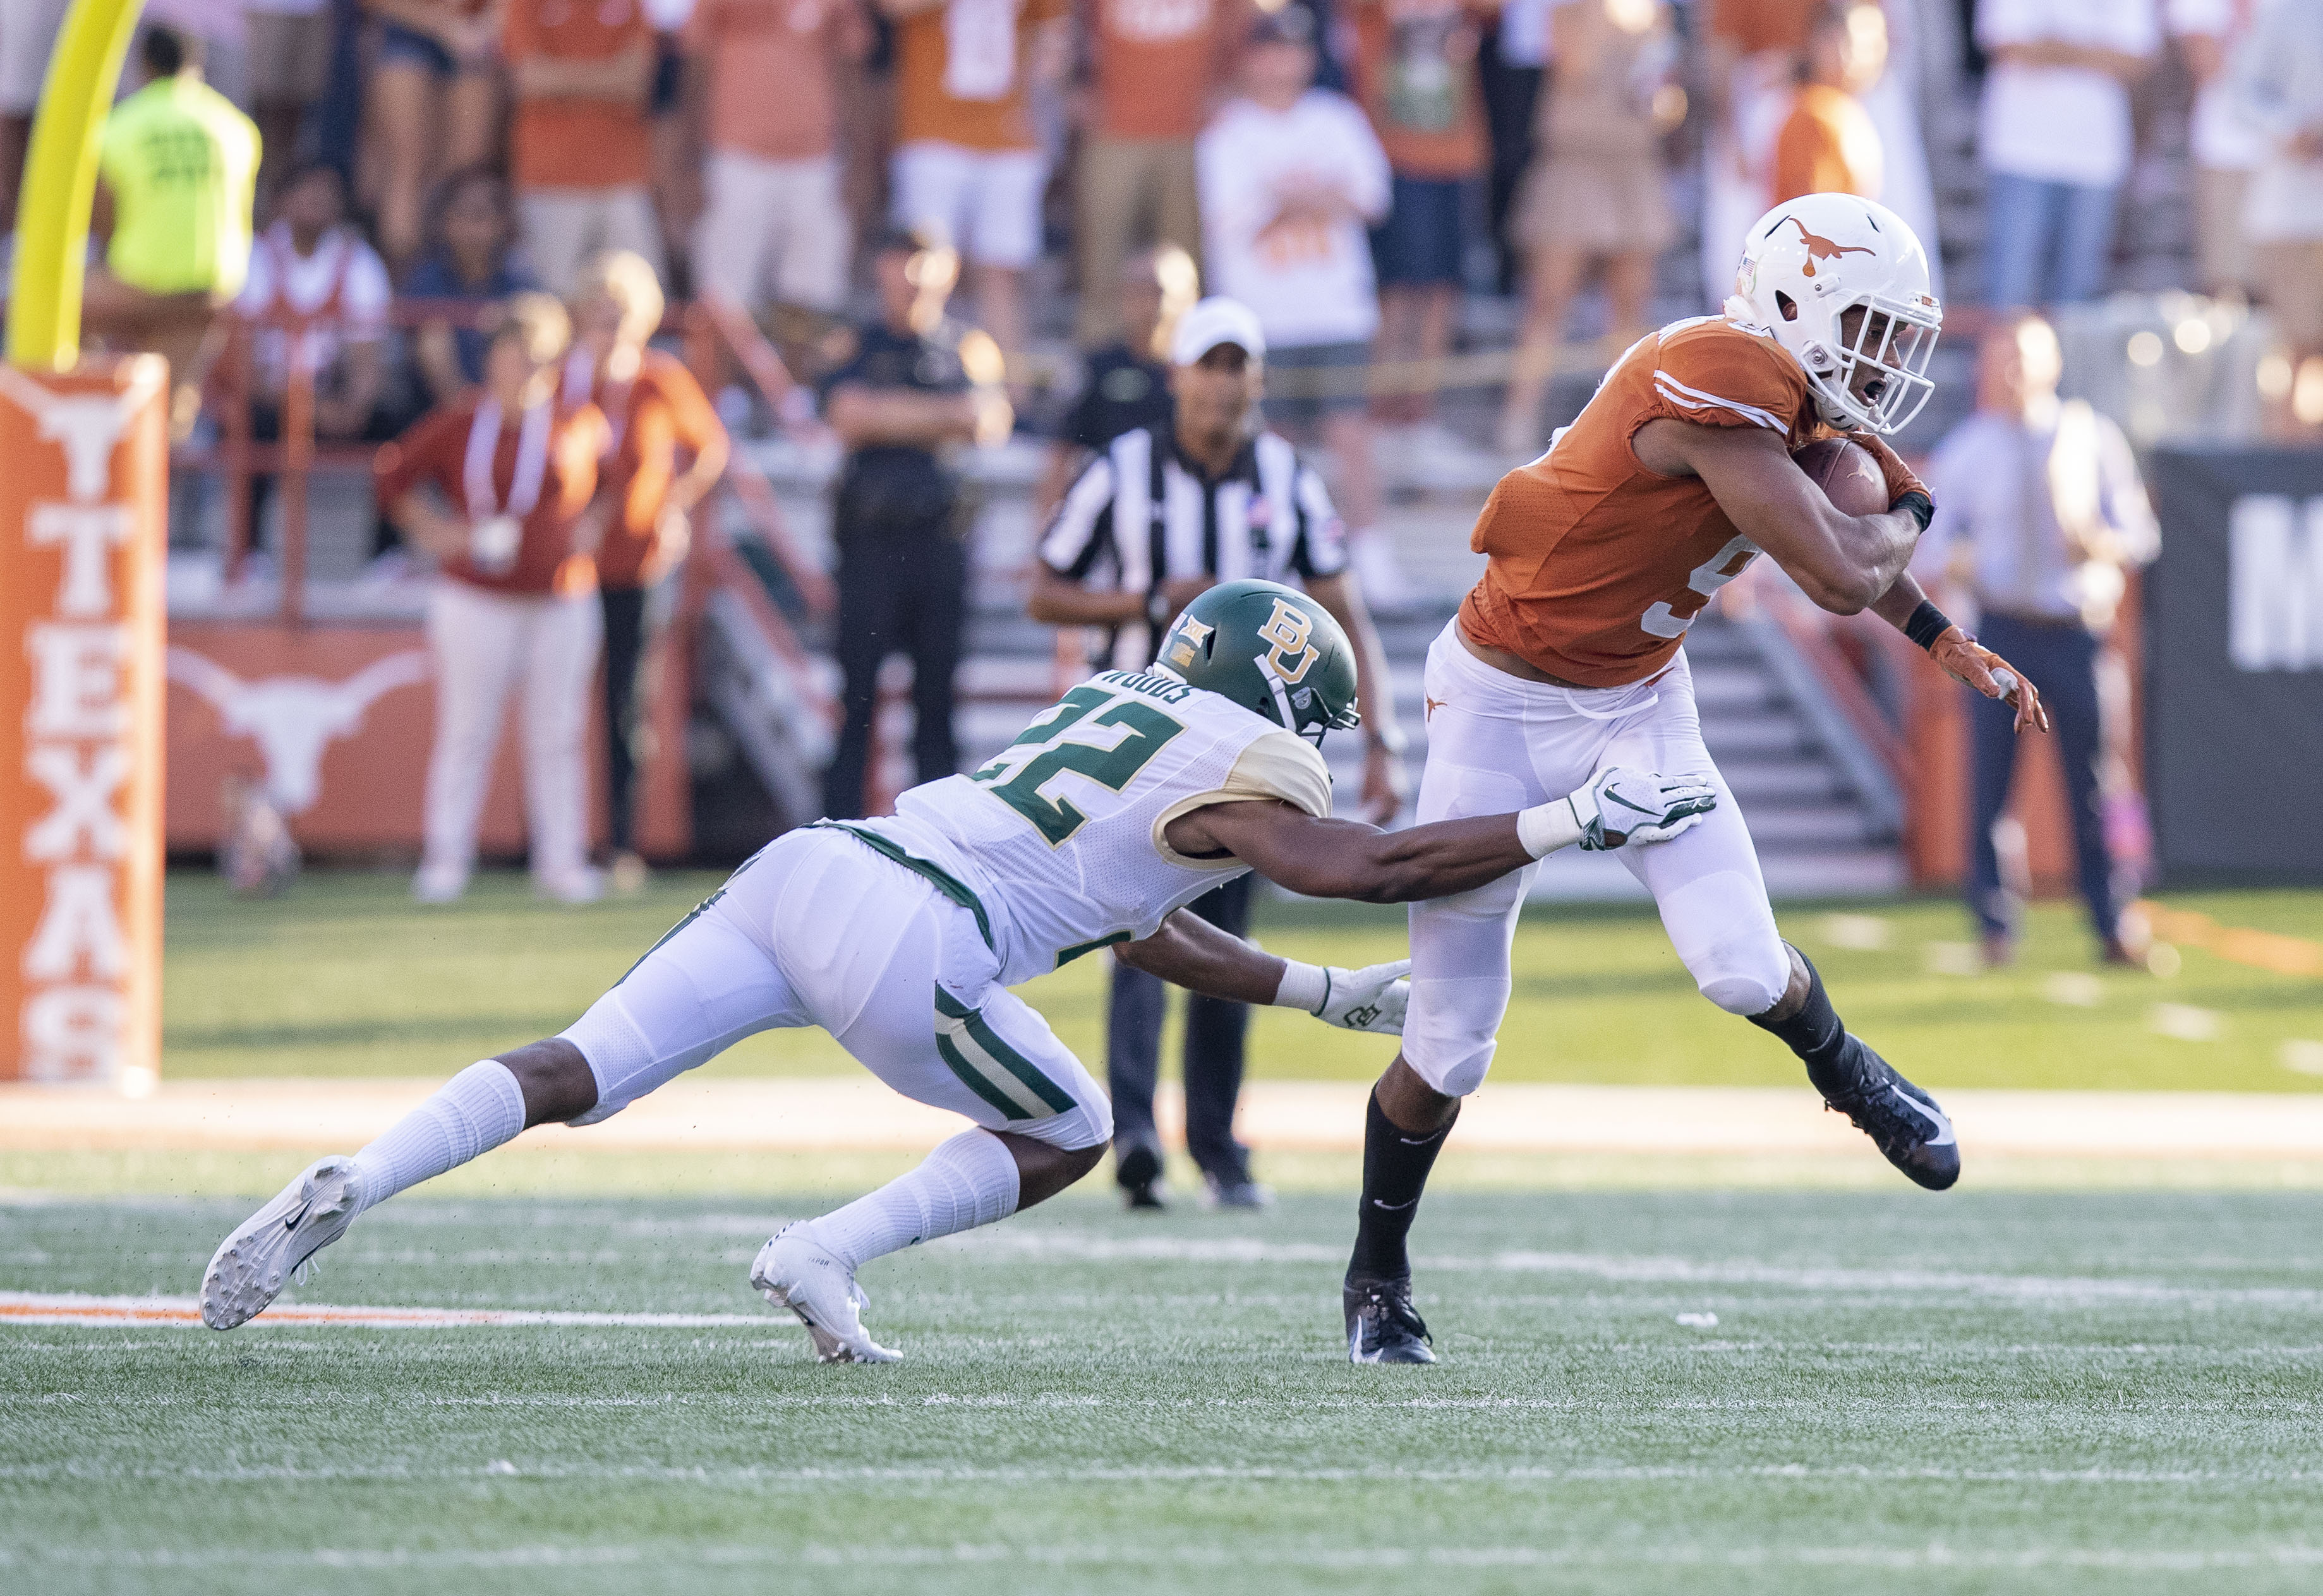 Oct 13, 2018; Austin, TX, USA; Texas Longhorns wide receiver Collin Johnson (9) spins away from Baylor Bears safety JT Woods (22) during the fourth quarter at Darrell K Royal-Texas Memorial Stadium. Mandatory Credit: John Gutierrez-USA TODAY Sports